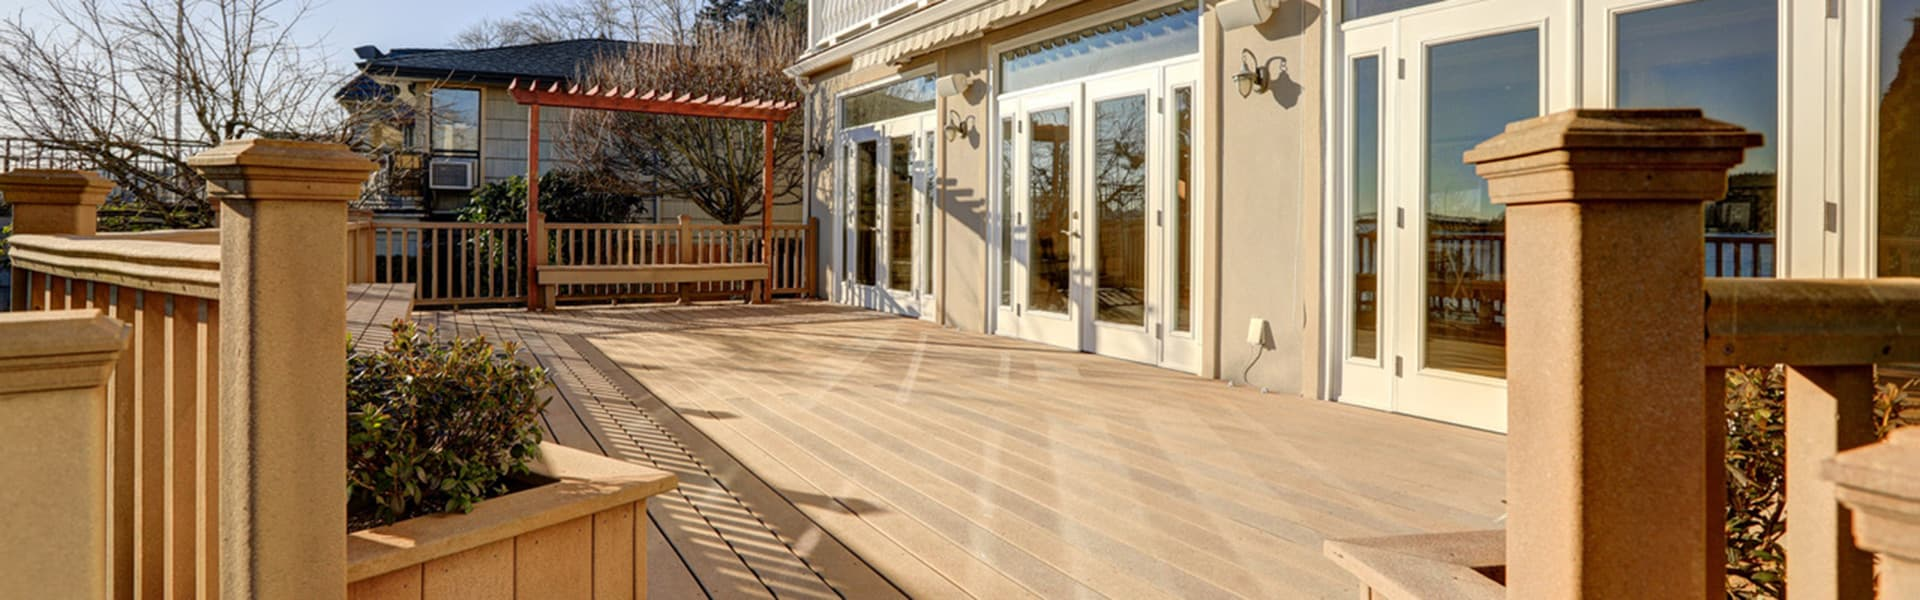 A wide view of a home deck in the morning light